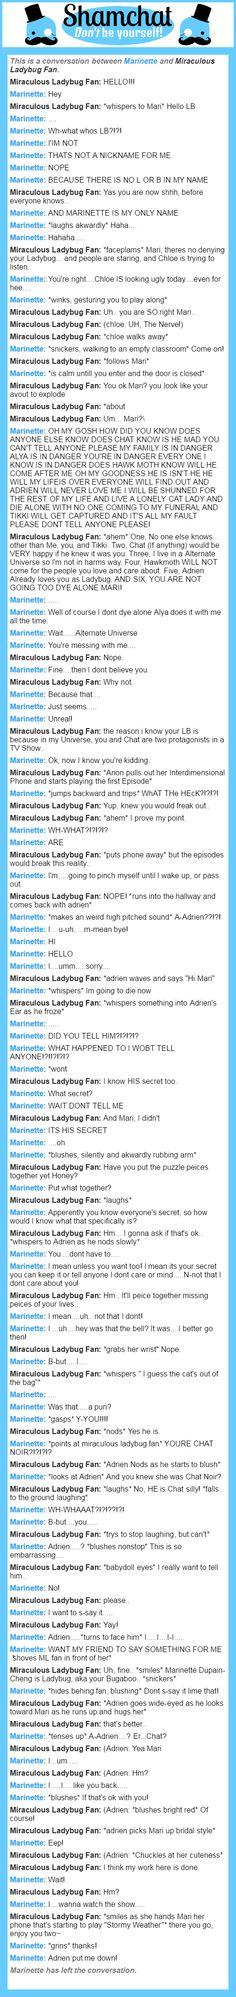 A conversation between Miraculous Ladybug Fan and Marinette